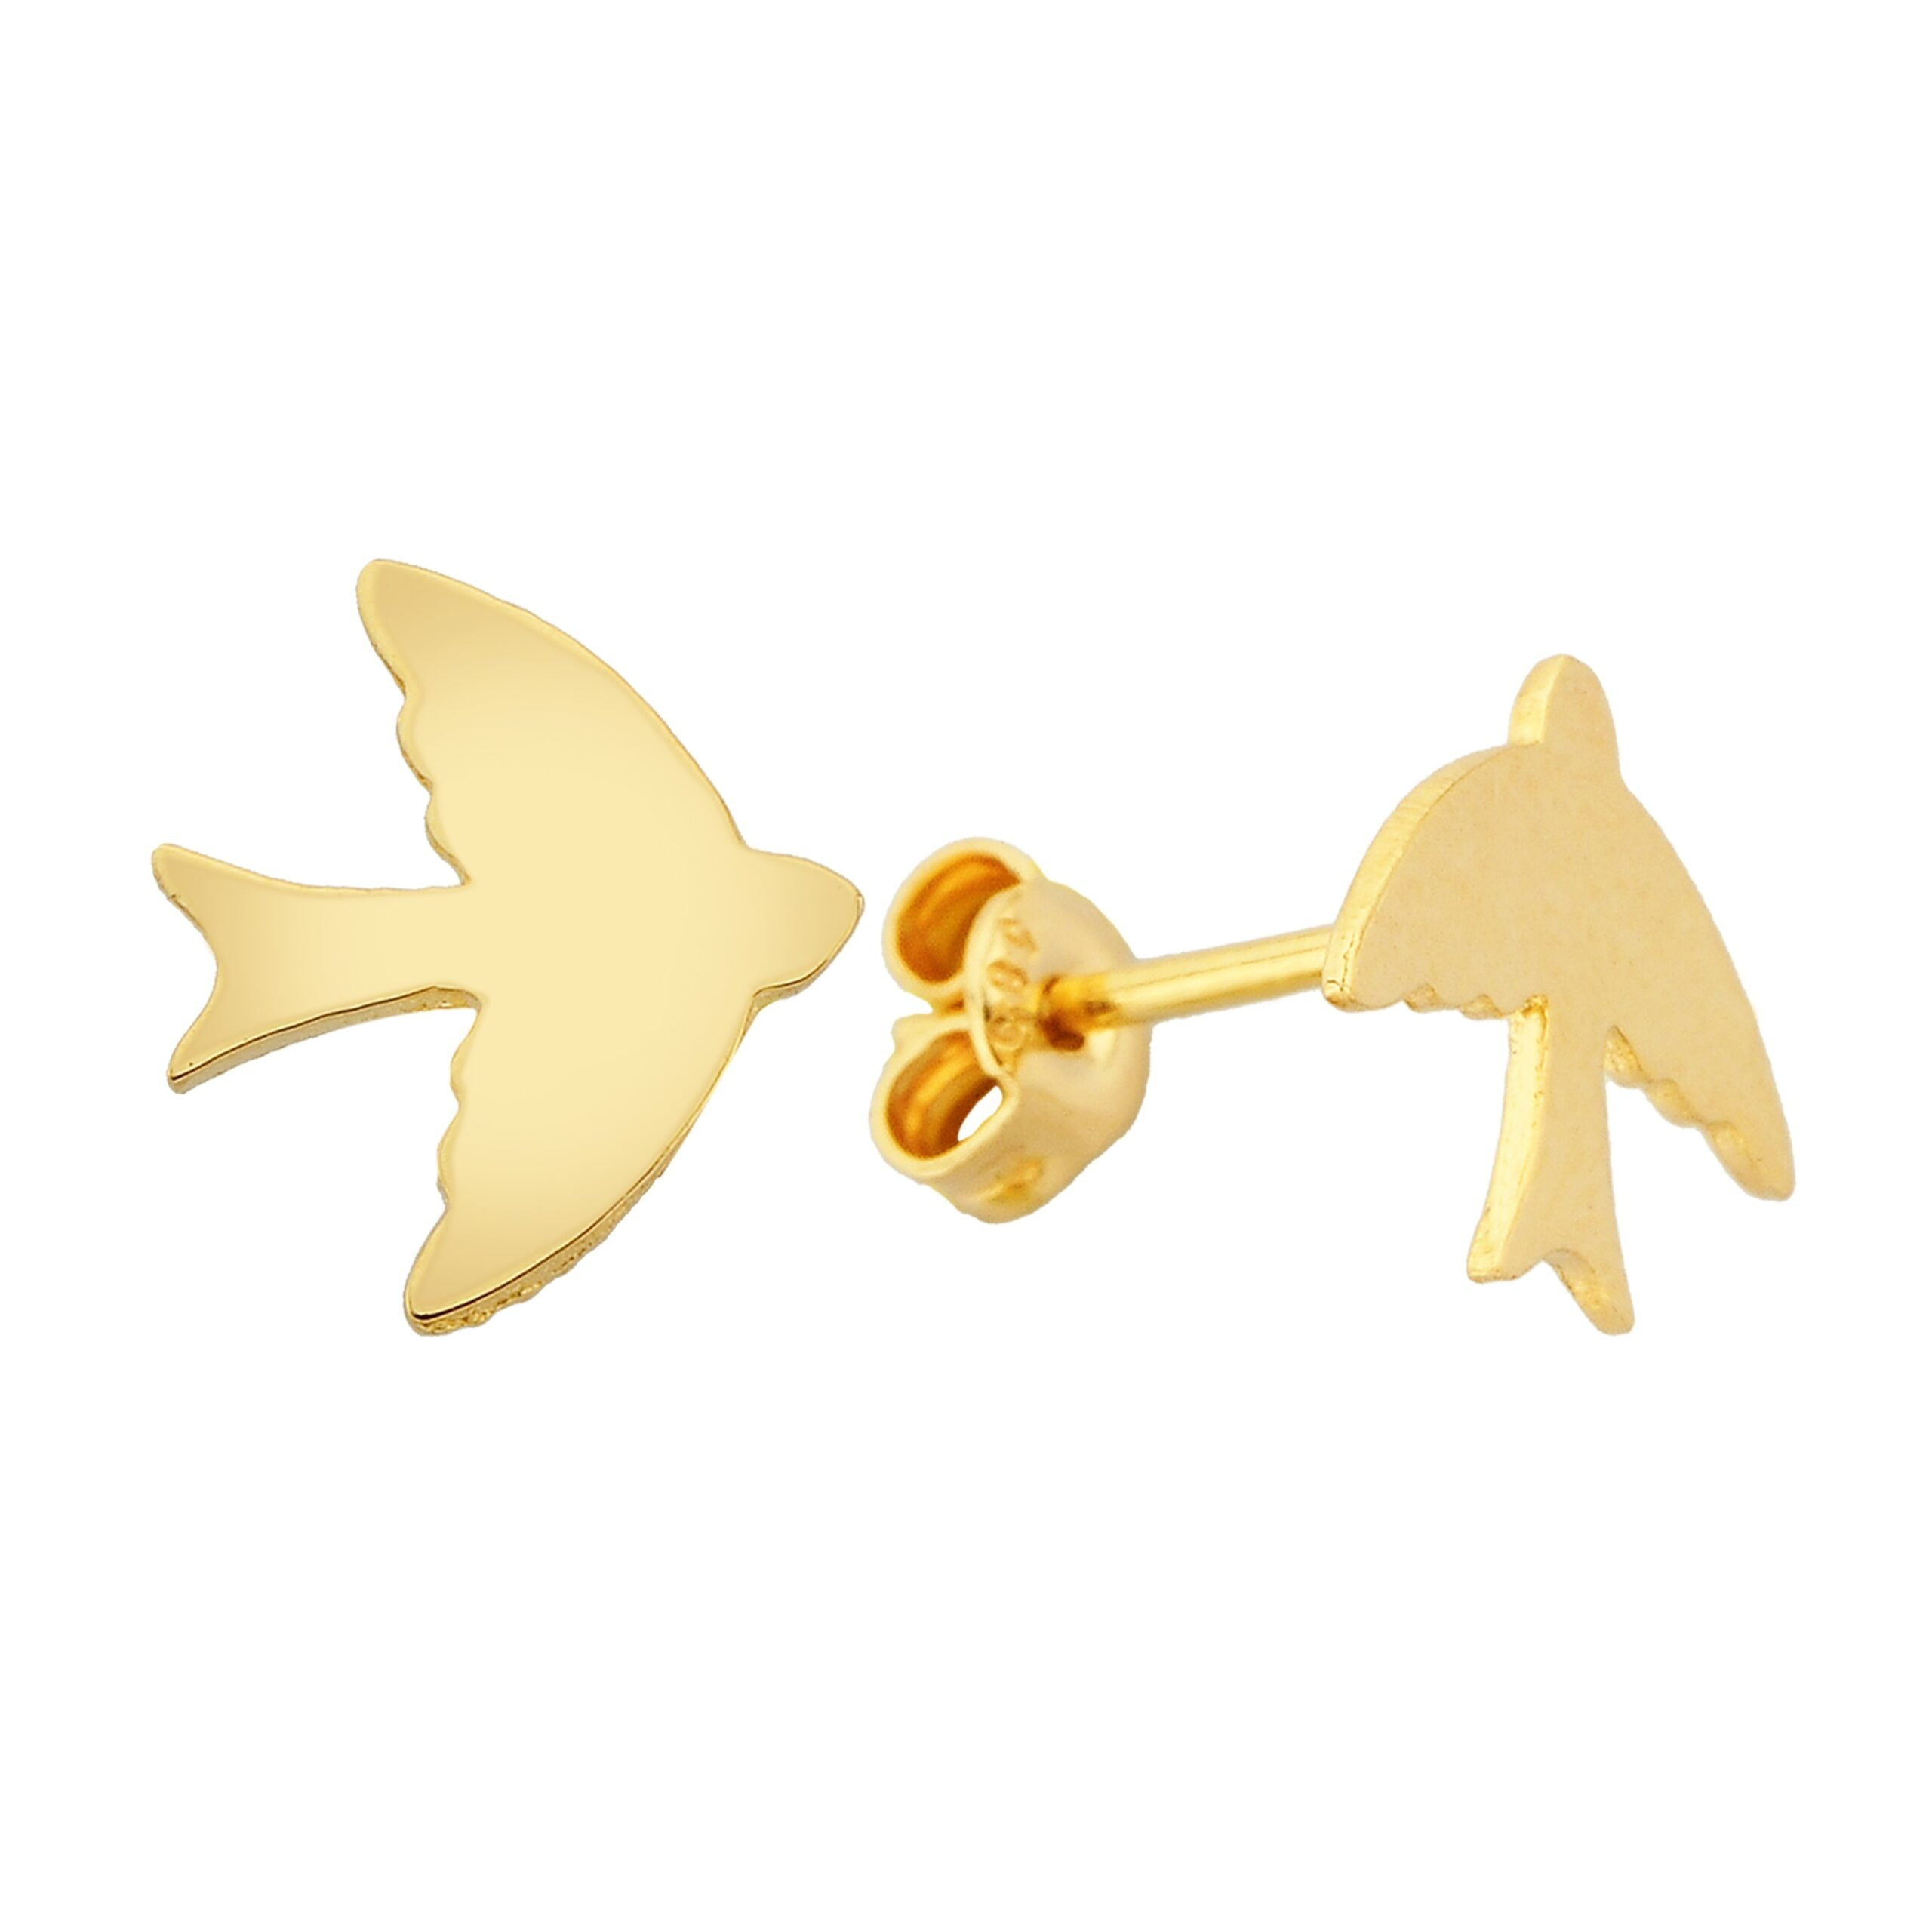 14K Real Solid Gold Swallow Stud Earrings for Women Bird Studs Jewelry Birthday gift Animal Sparrow Christmas xmas mother girl